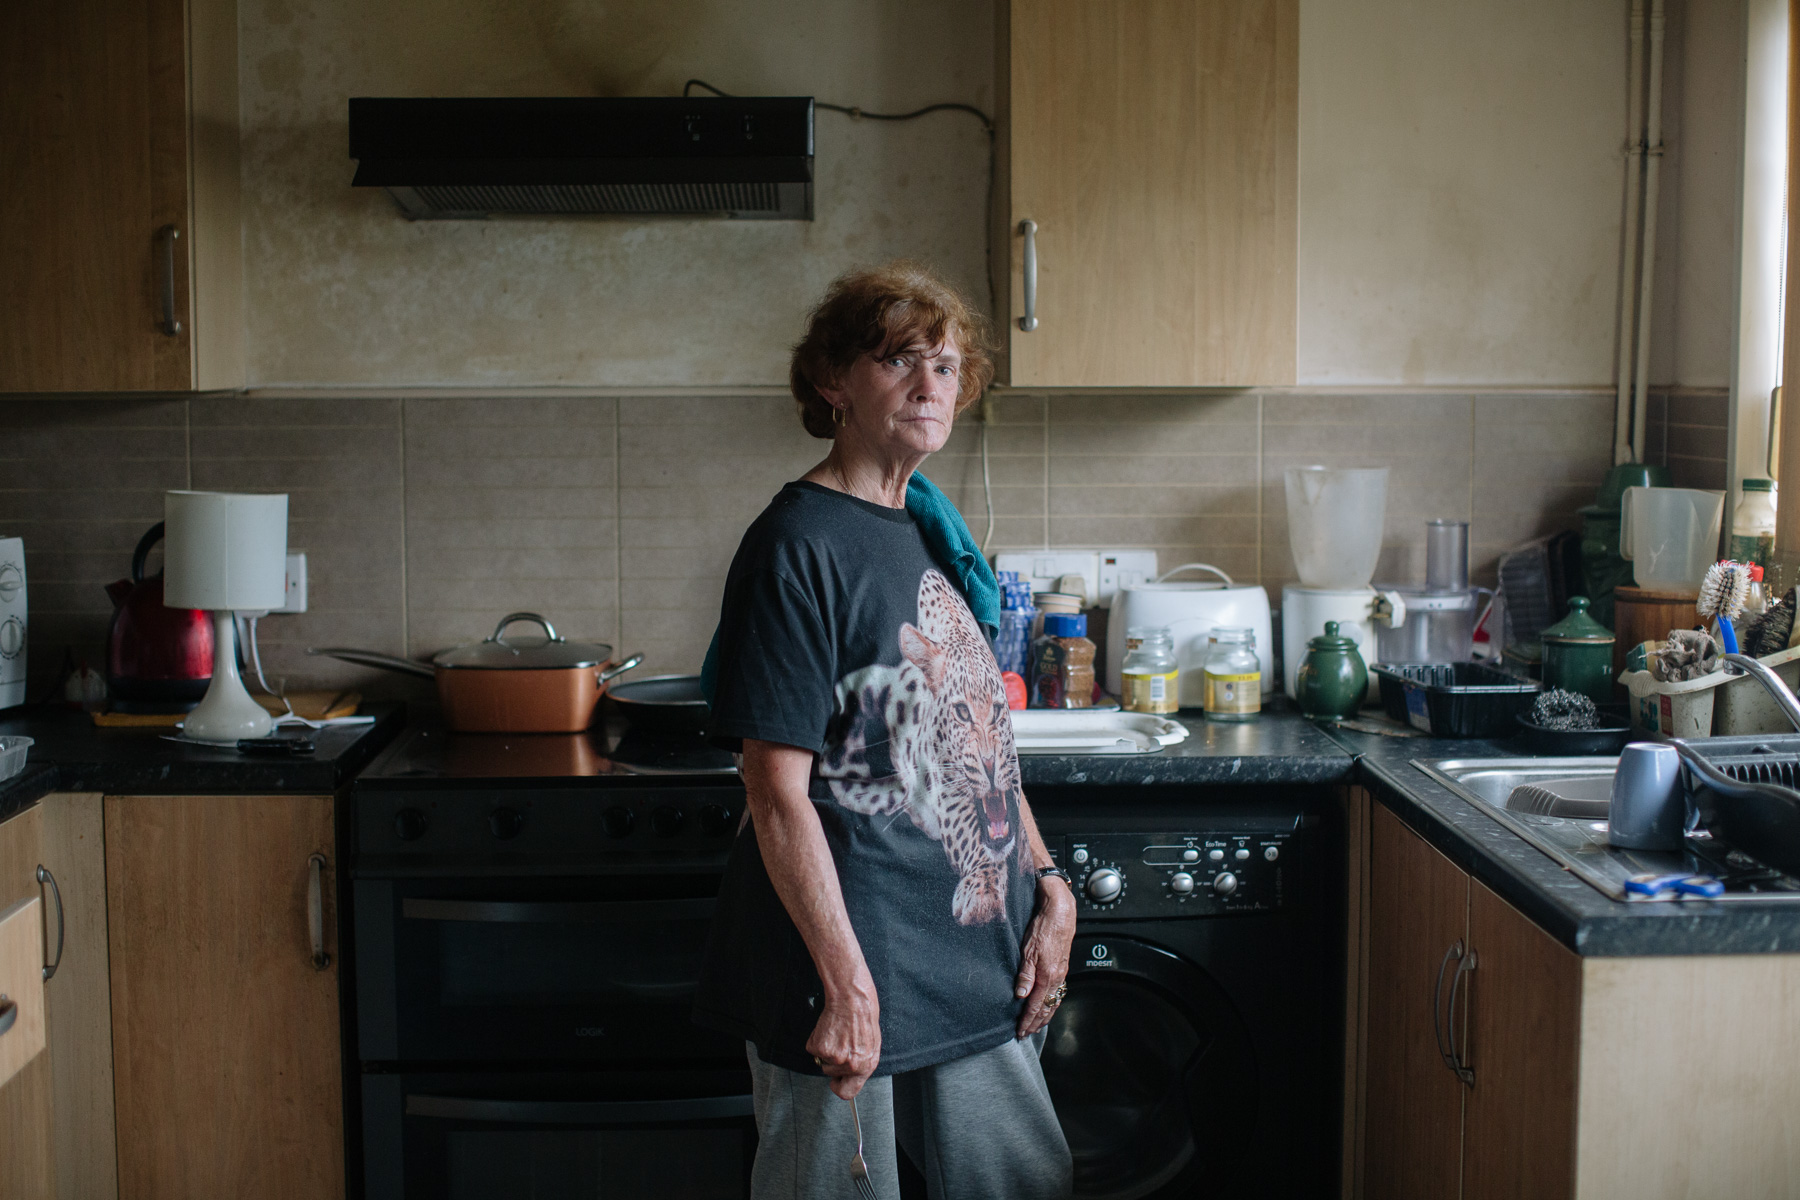 """Suzanne's Mother on politicians: """"They promise they're going to do this and do that, but when the time comes, half the stuff they promised doesn't happen."""""""